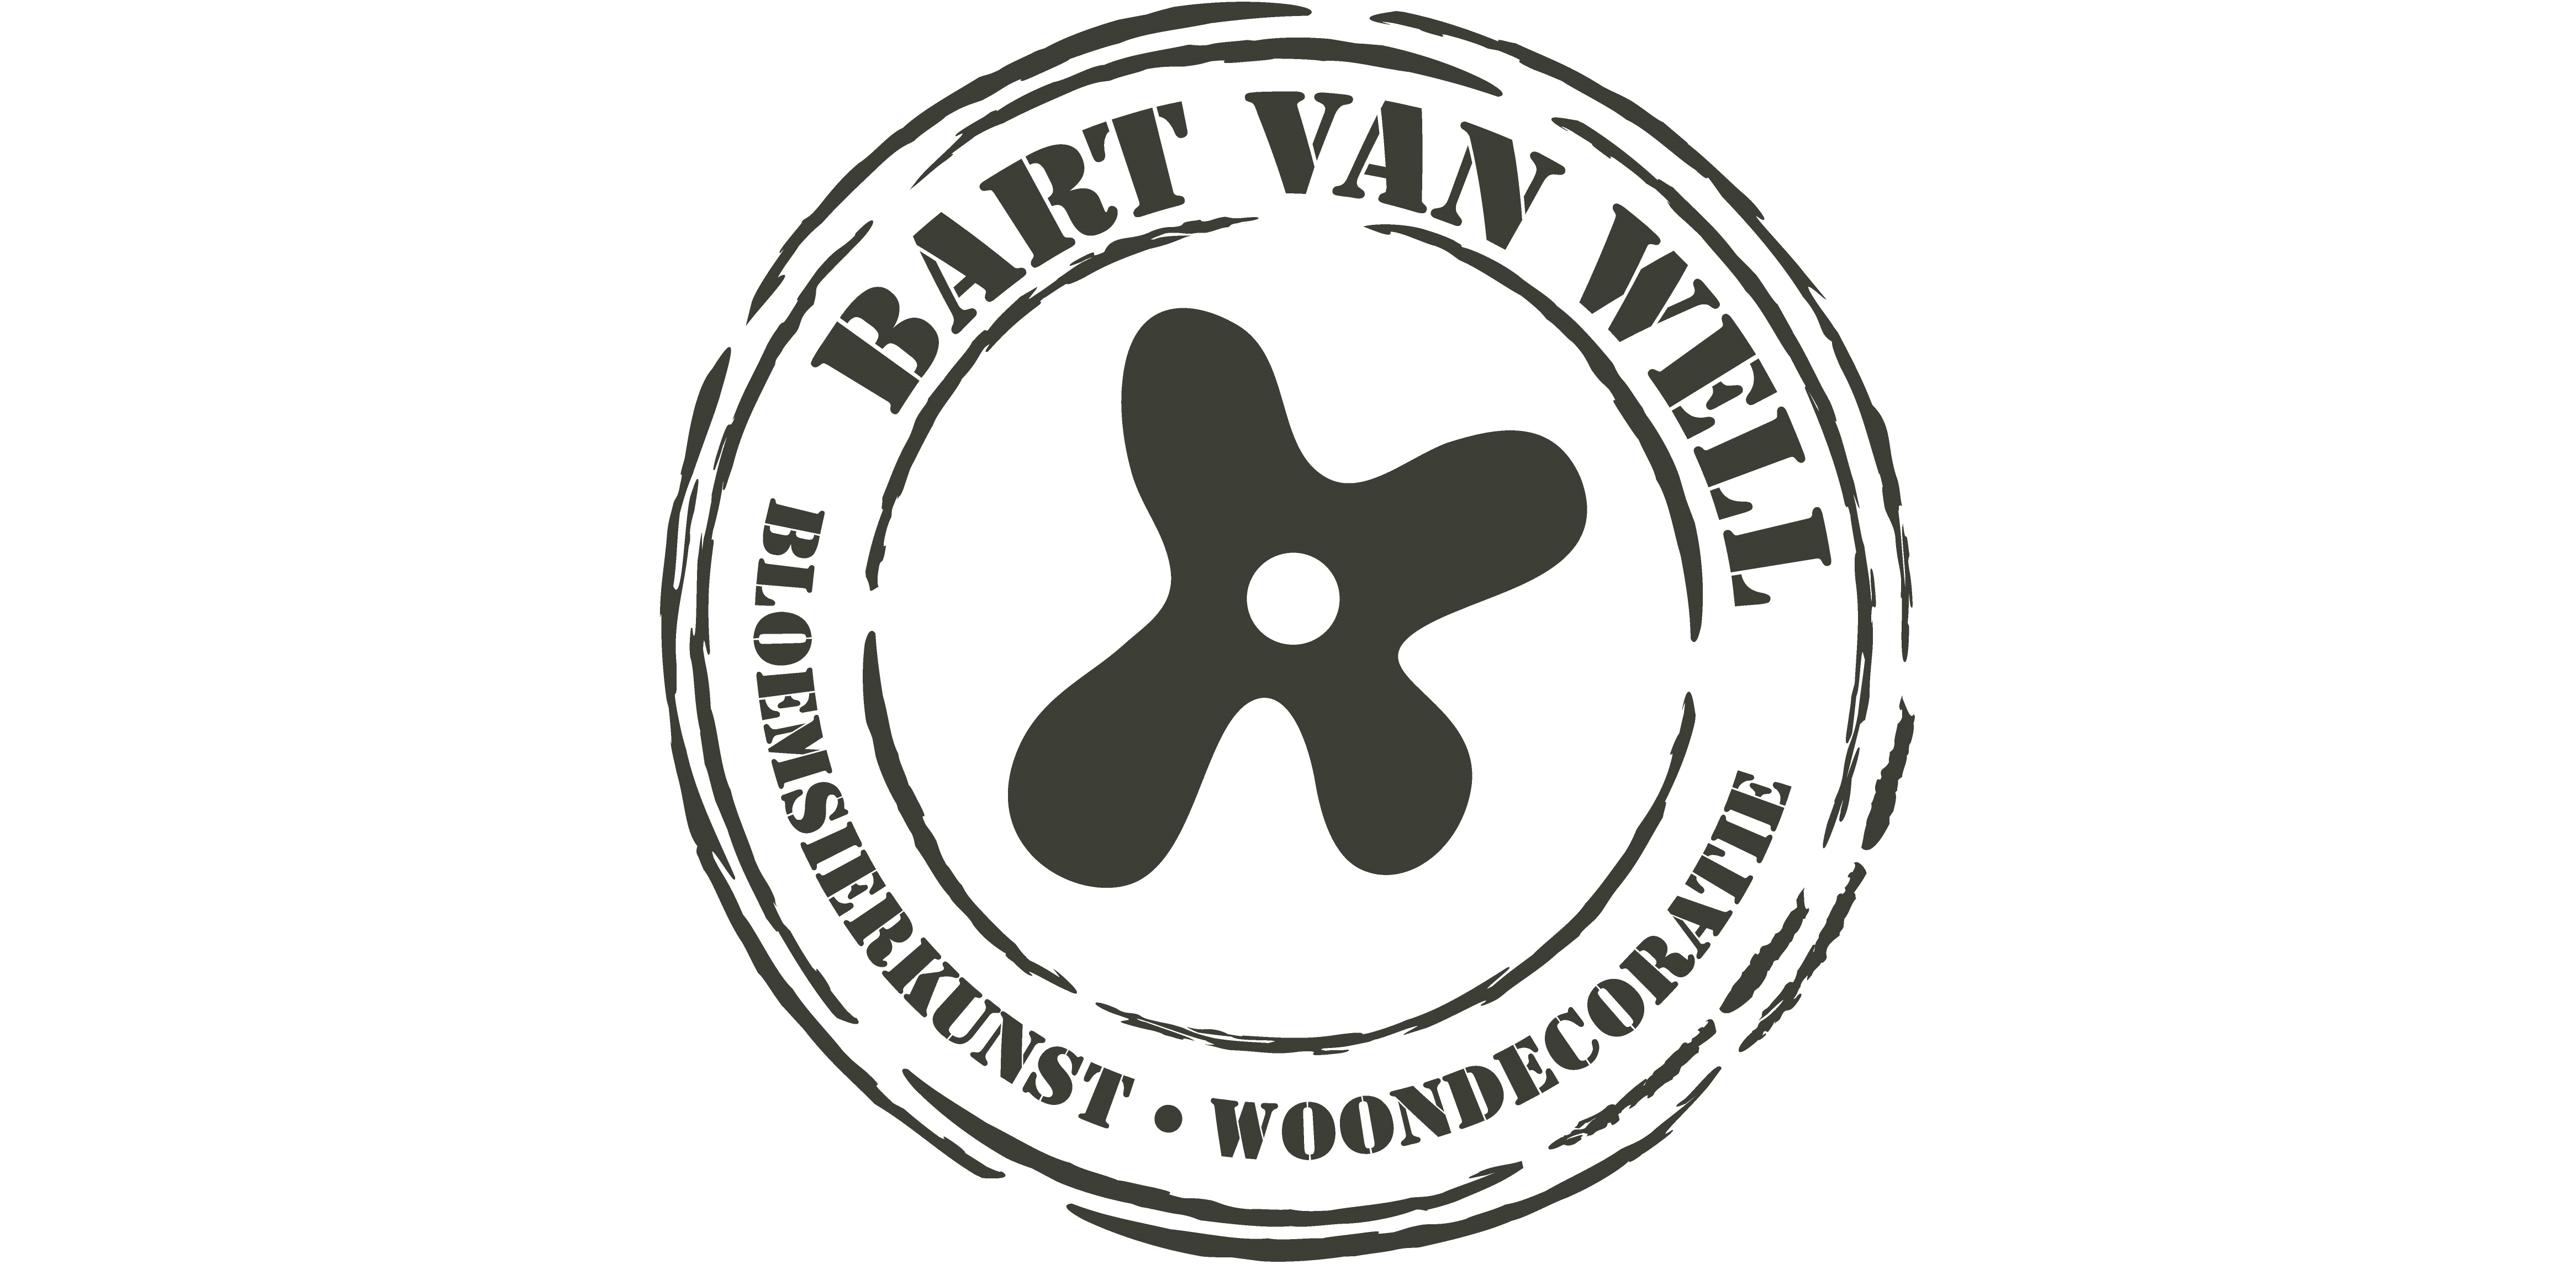 Bart van Well